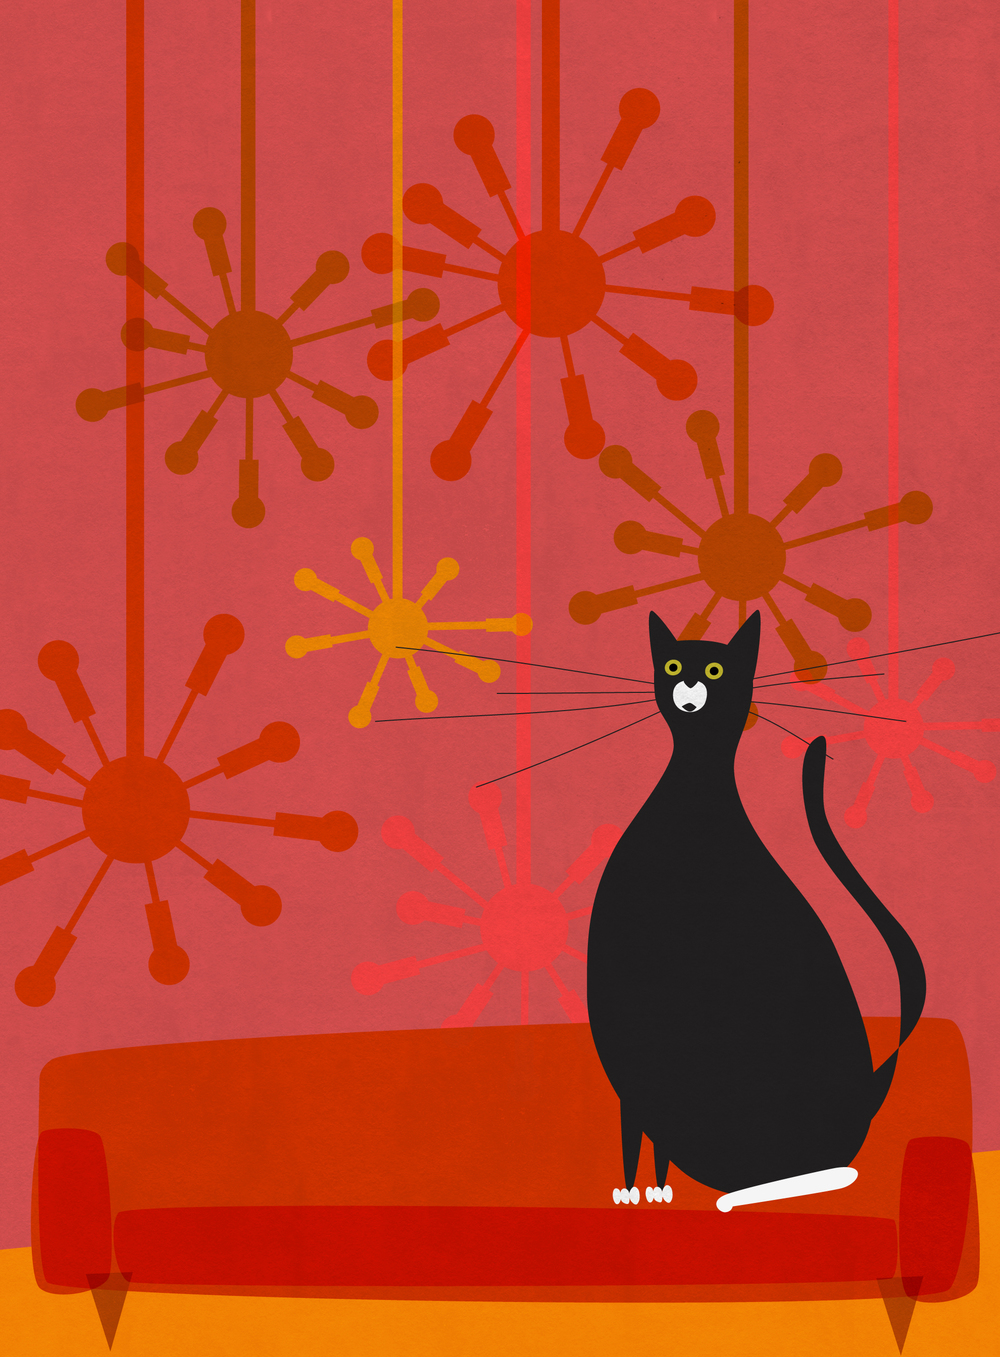 mid century meowdern, adobe illustrator